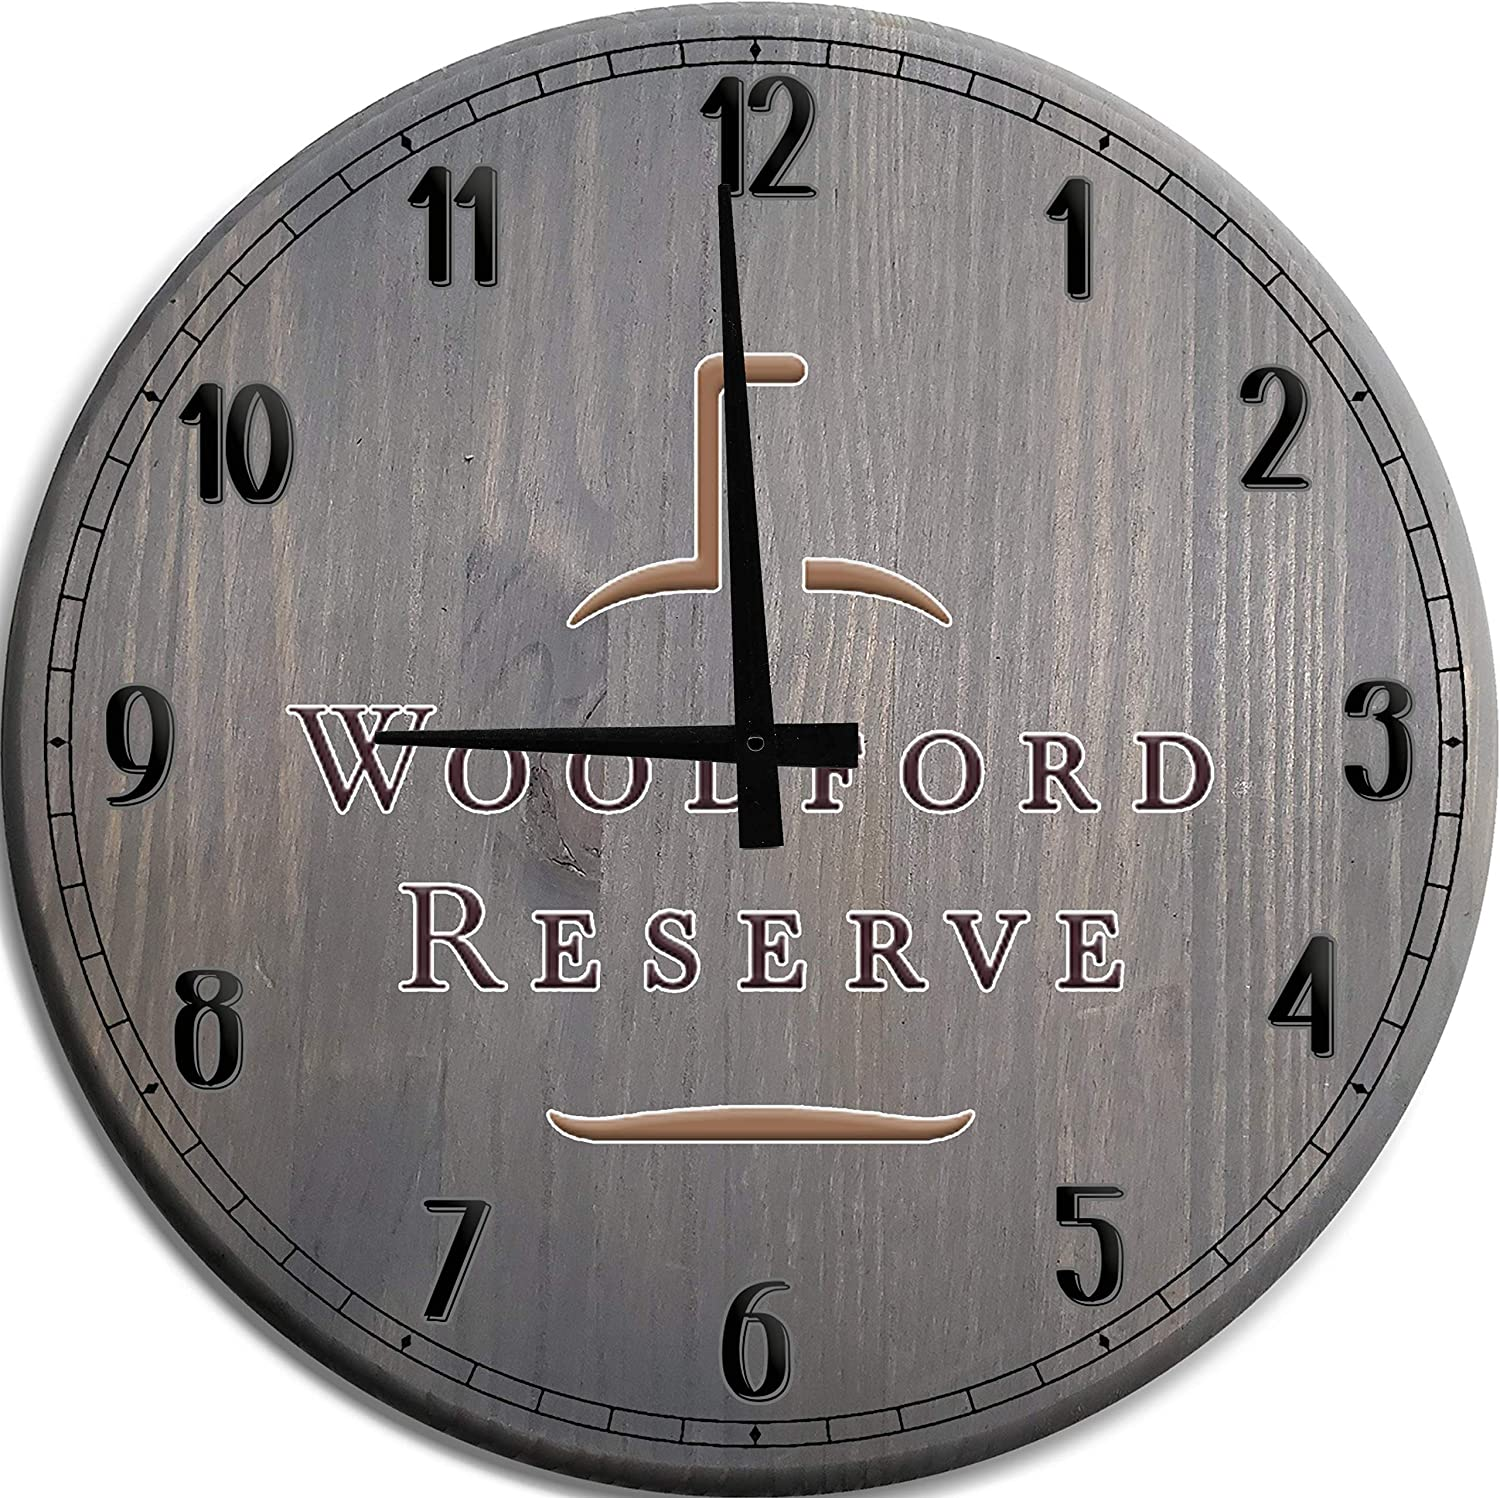 TBA Large Wall Clock 国産品 ギフト Woodford Reserve Whiskey Cave Man Bourbon W